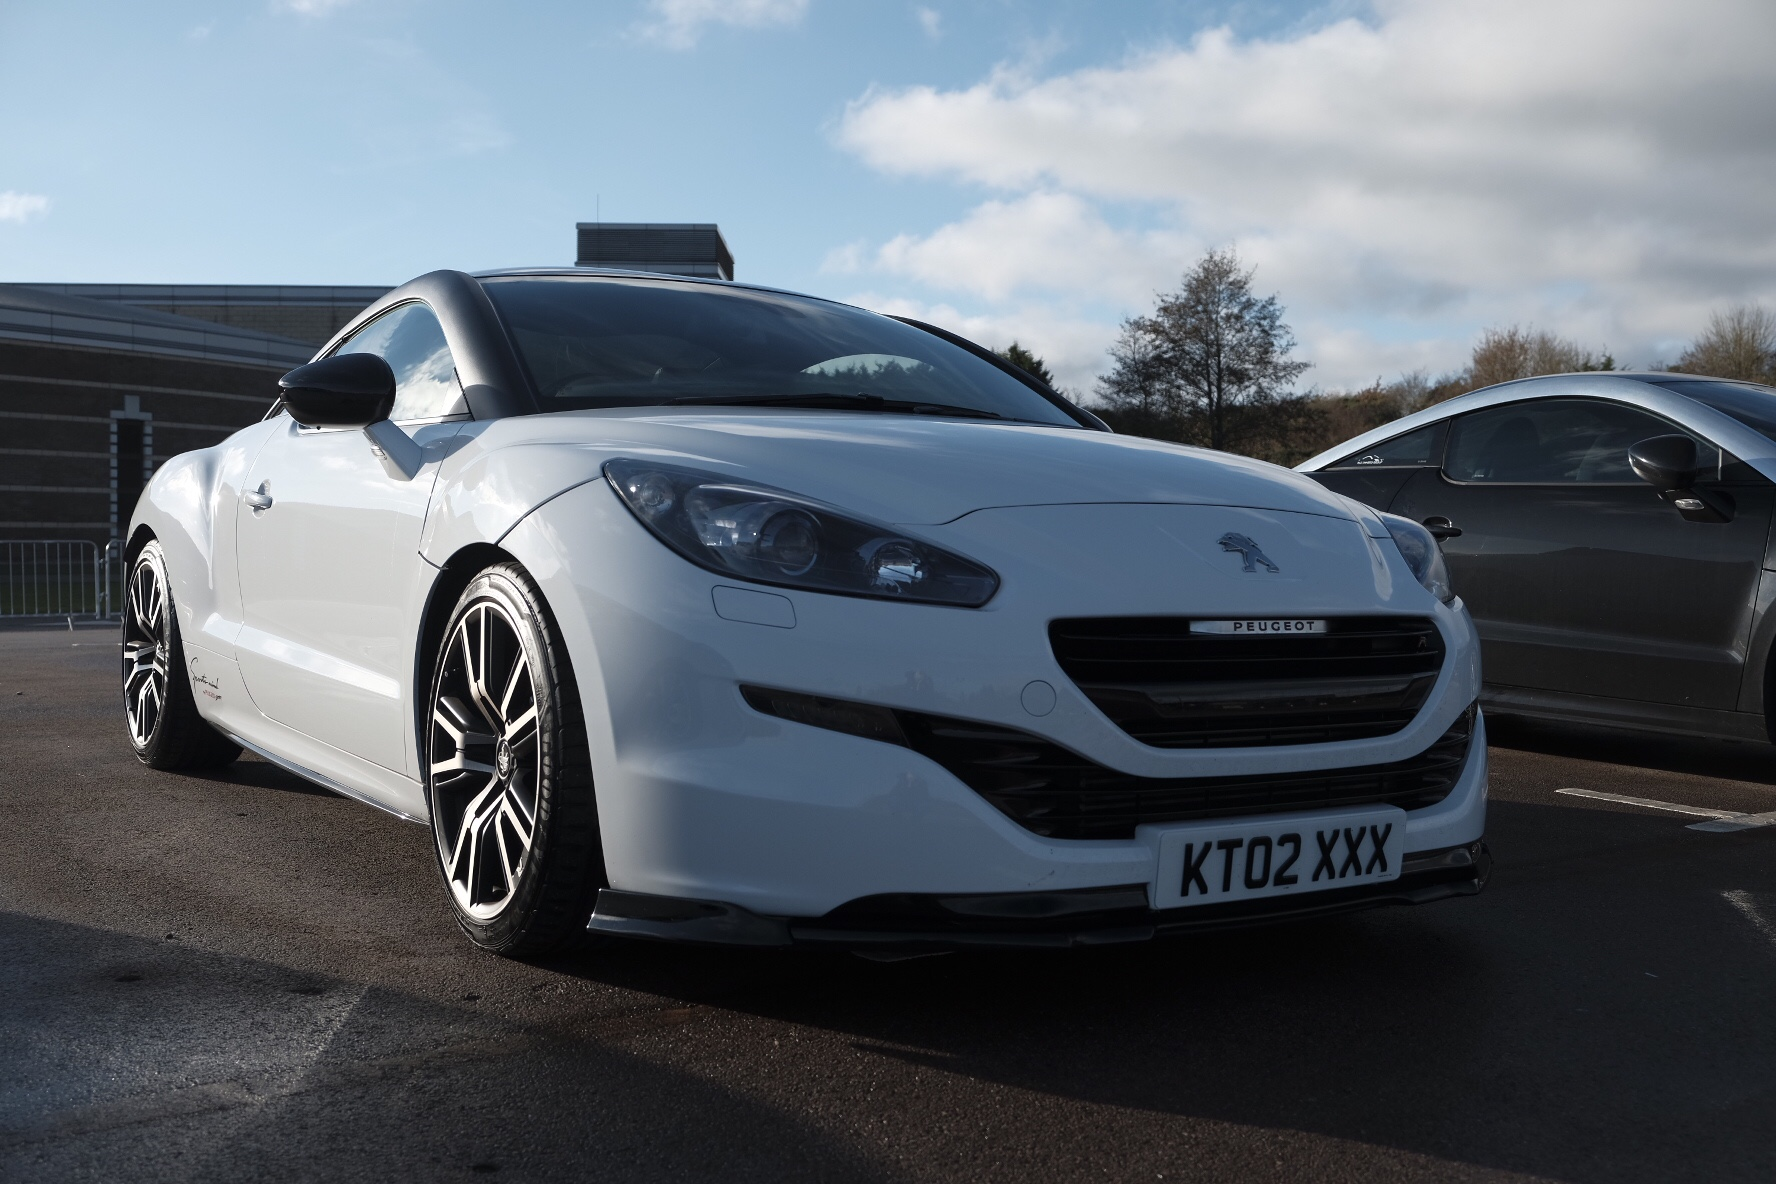 peugeot rcz forum advance notice of rcz r for sale for sale wanted group buys. Black Bedroom Furniture Sets. Home Design Ideas